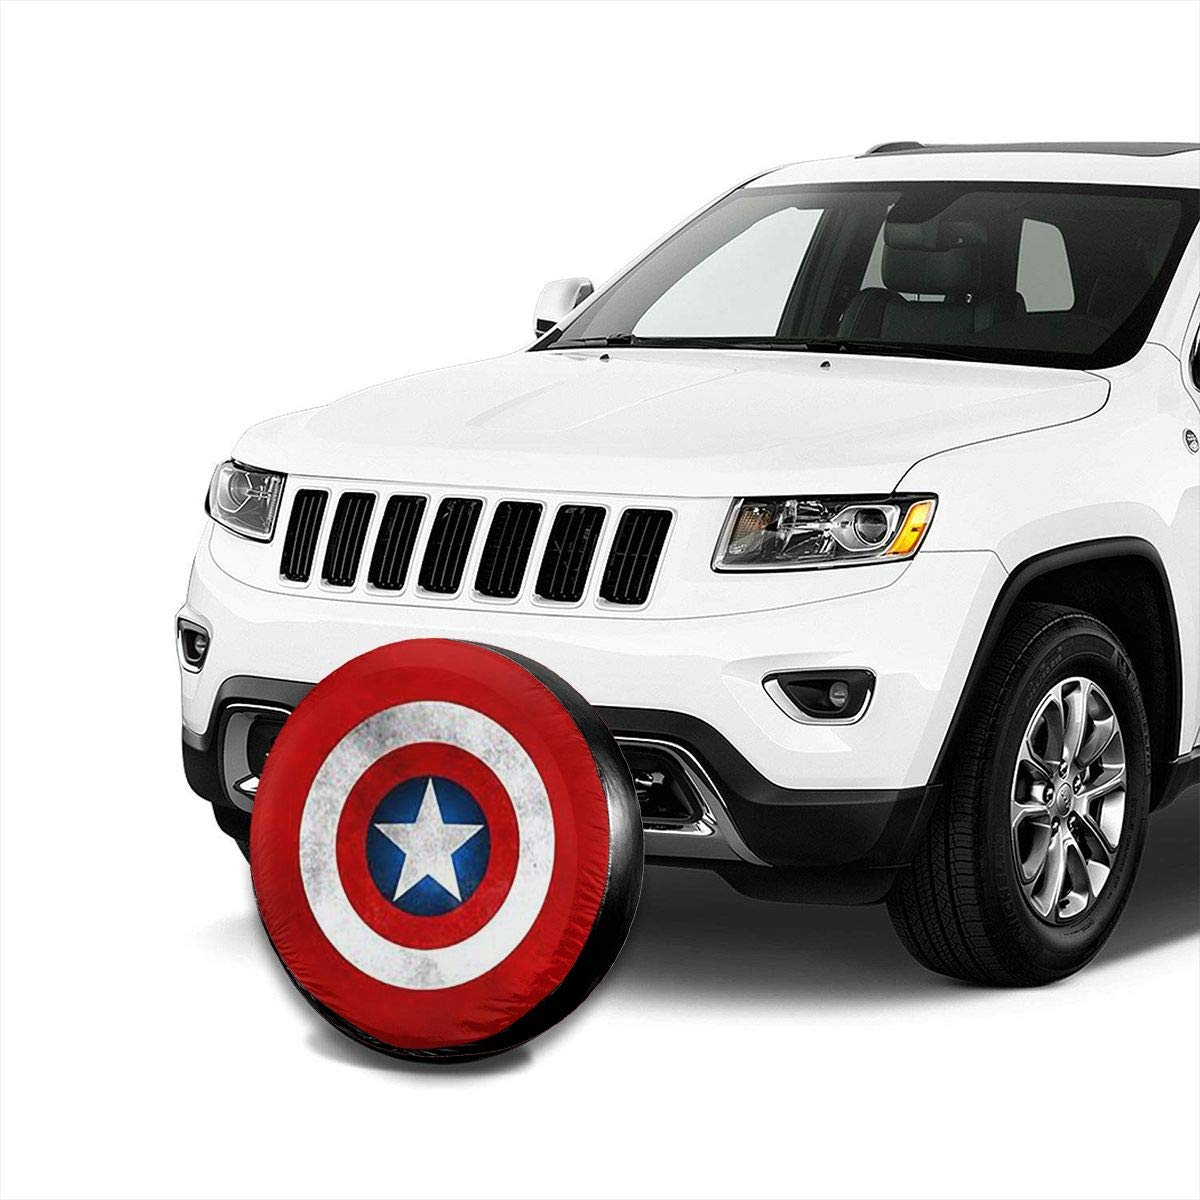 Lbbb1994 Fashion Captain America in Red Background Classic Accessories Over Drive Standard RV Jeep Liberty Wrangler SUV Camper Travel Wheel Cover For14-17 Inch